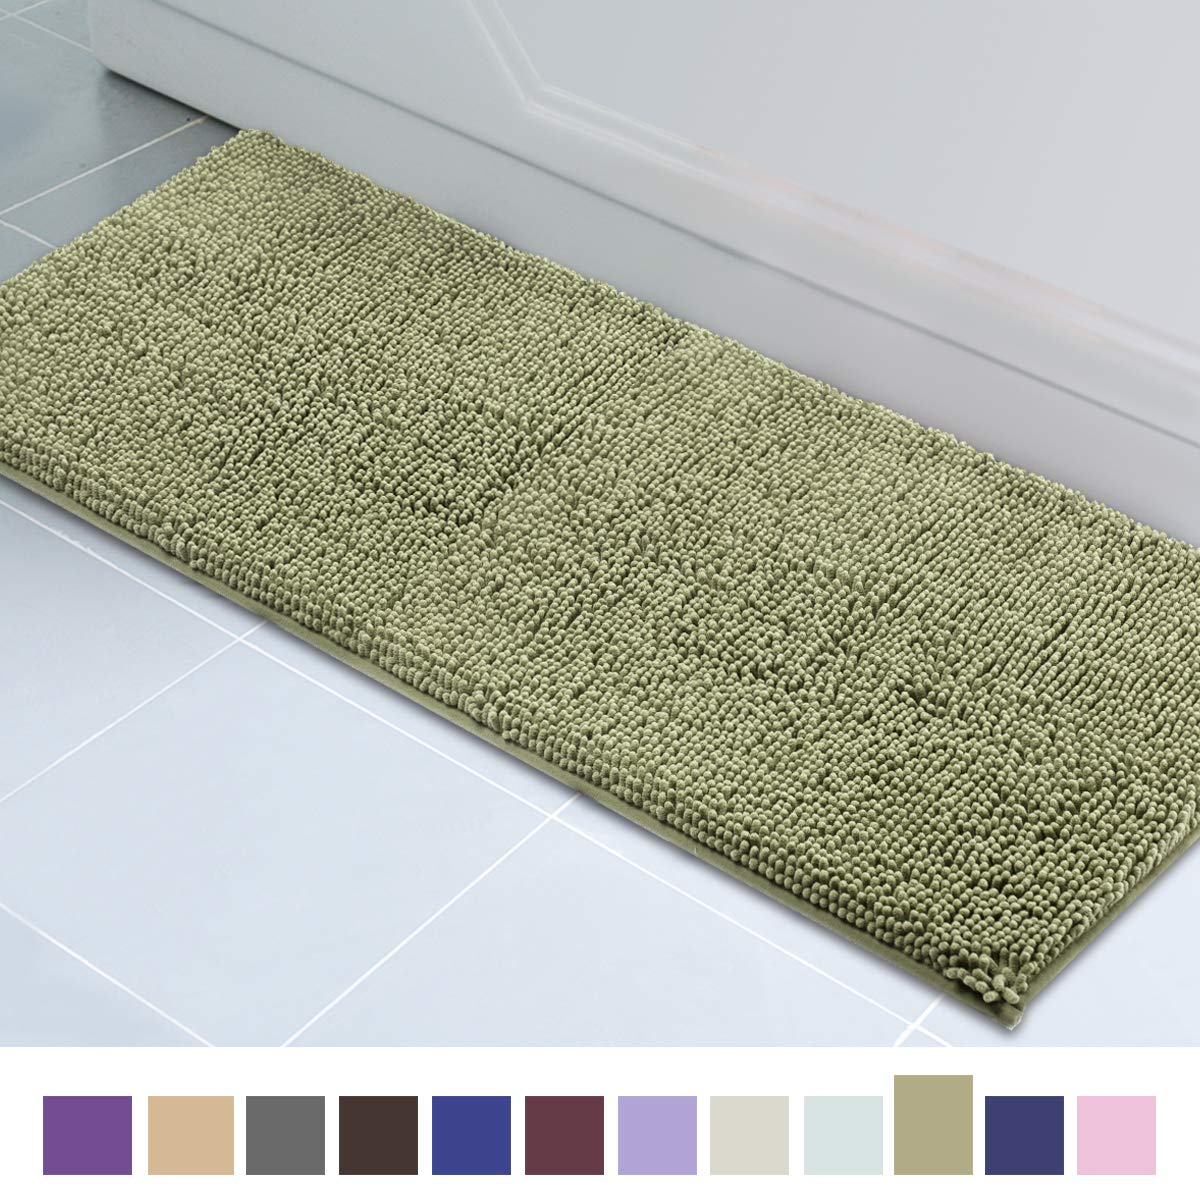 ITSOFT Non Slip Shaggy Chenille Soft Microfibers Runner Large Bath Mat for Bathroom Rug Water Absorbent Carpet, Machine Washable, 21 x 59 Inches Sage Green